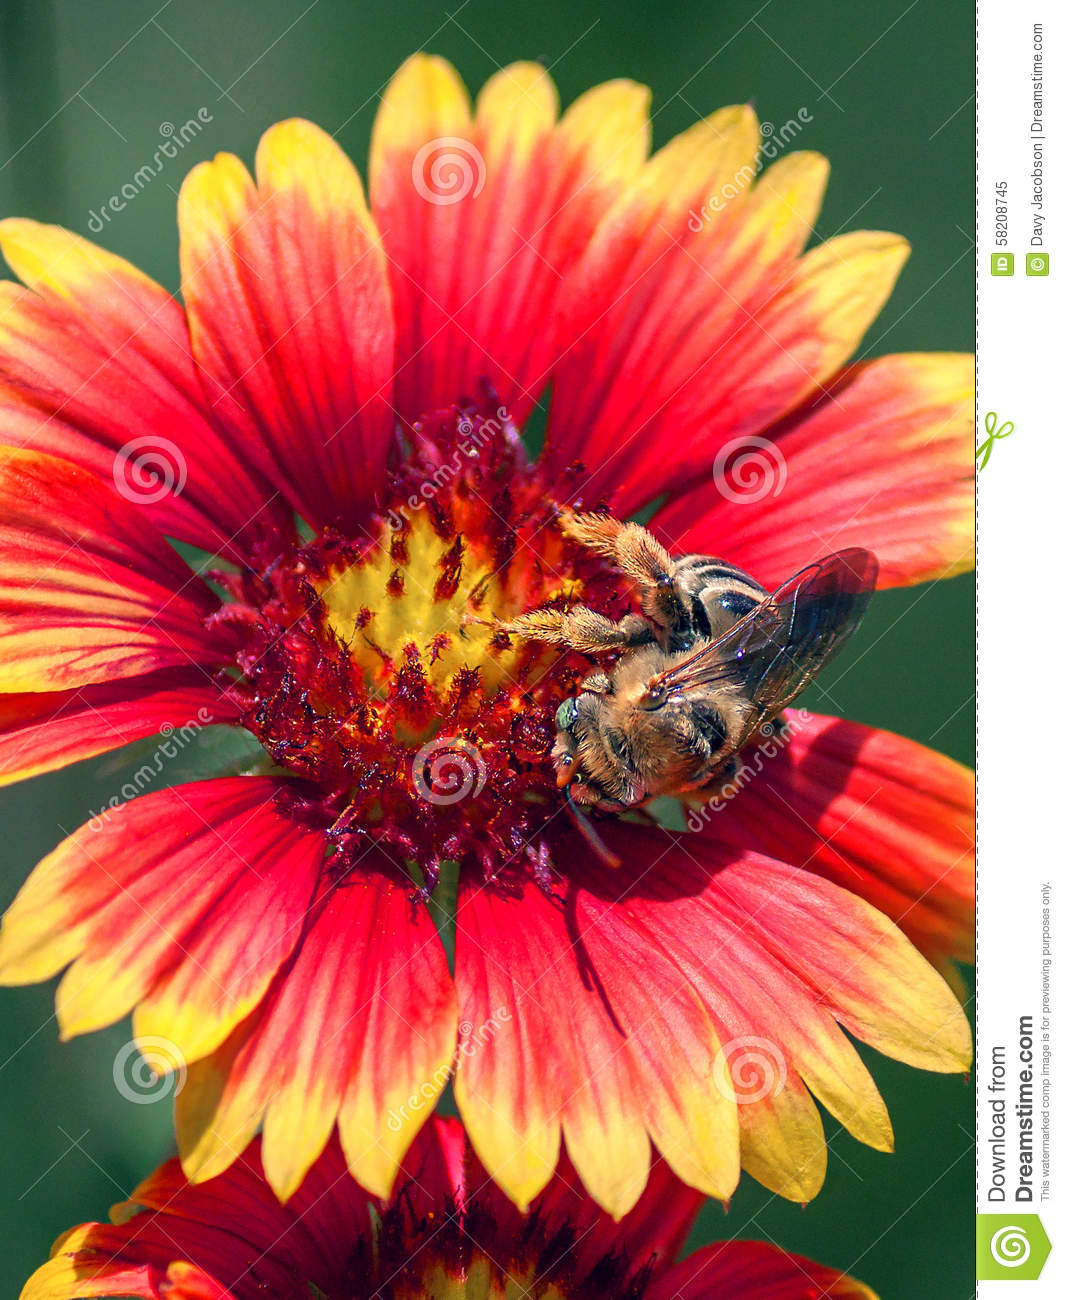 Bumblebee on gaillardia pulchella stock image image of yellow bumblebee on red flower with yellow tips gaillardia pulchella mightylinksfo